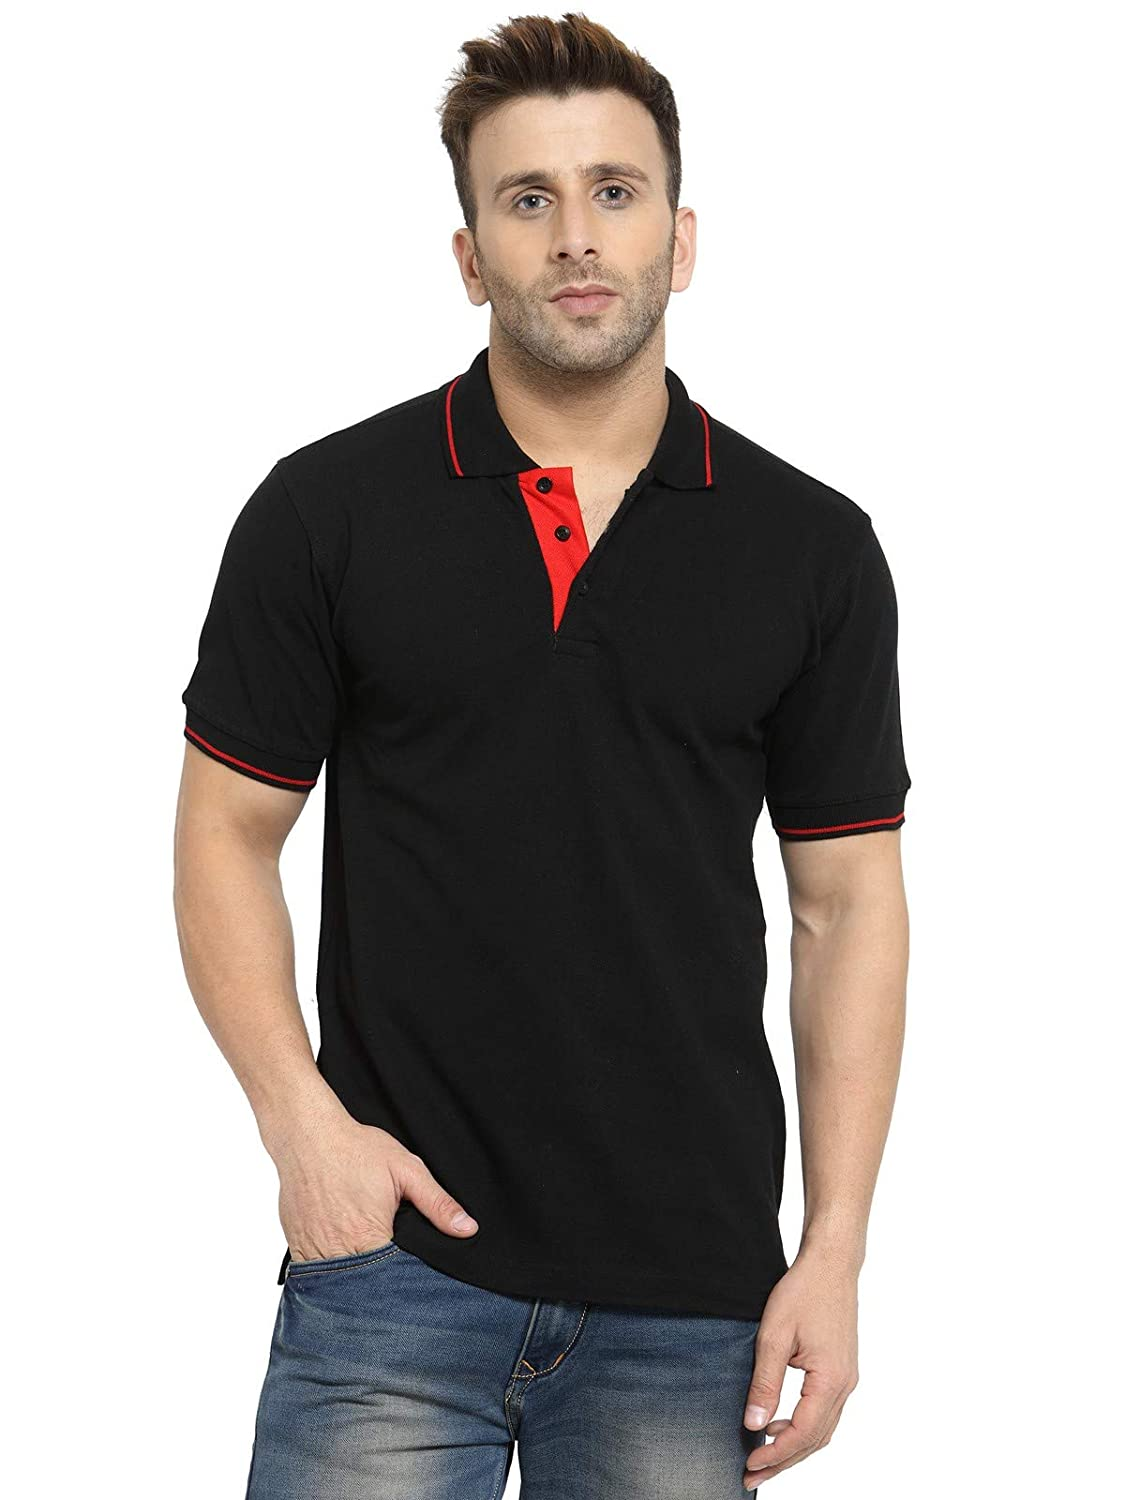 Men's Black Colour With Tipping Cotton Polo T-Shirt (XL-44)